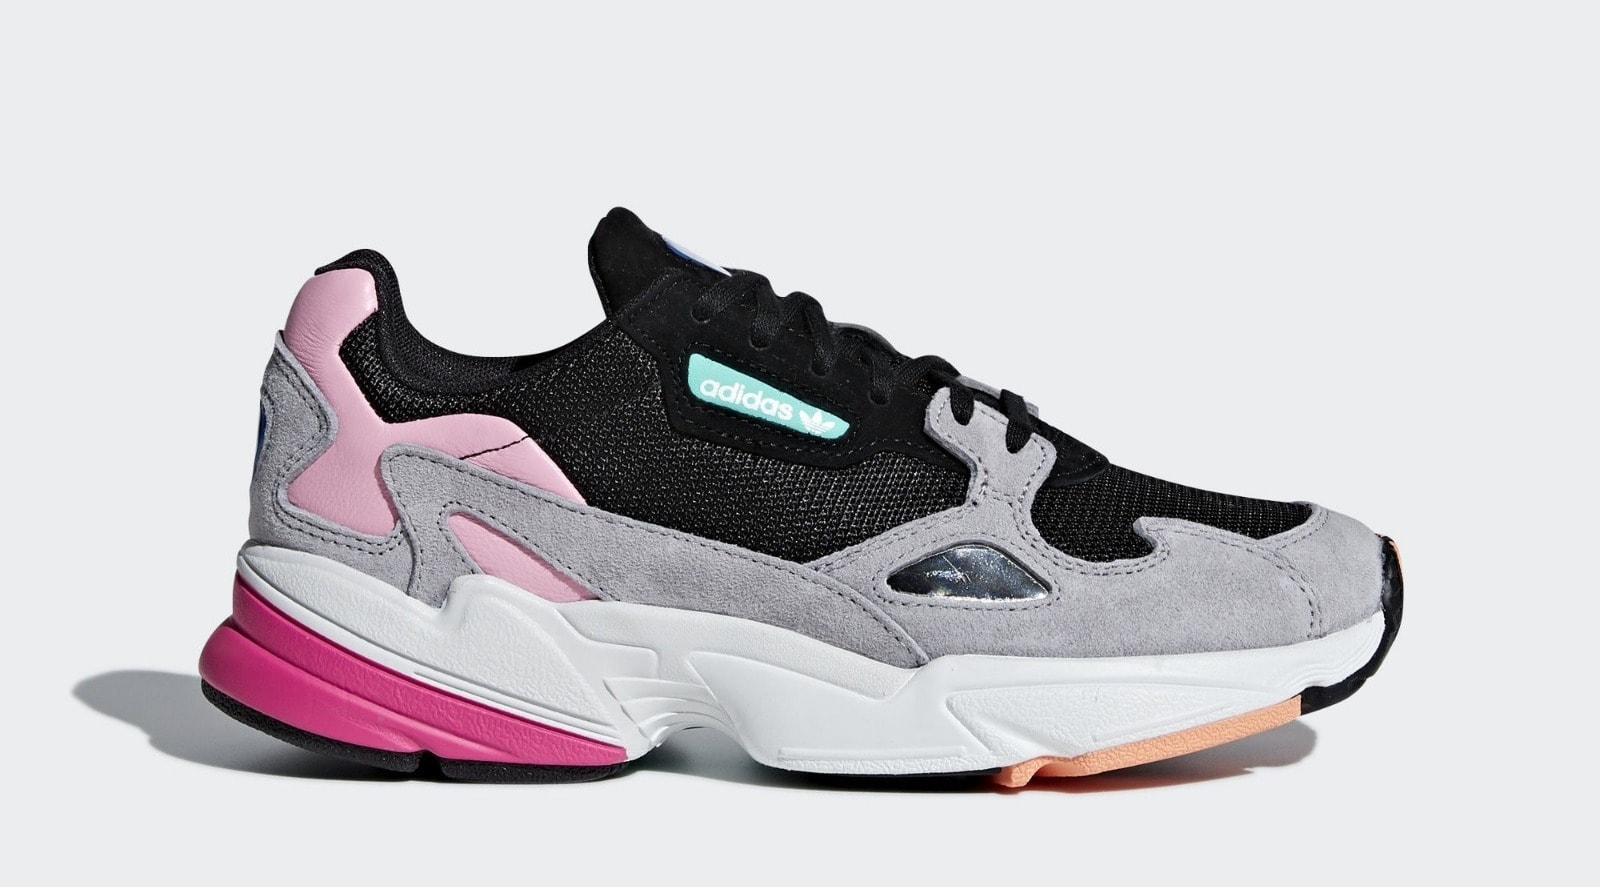 hot sale online 12e45 329ce With several new silhouettes already making waves among consumers, the  Three Stripes has renovated a 90 s classic into the modern adidas Falcon,  ...